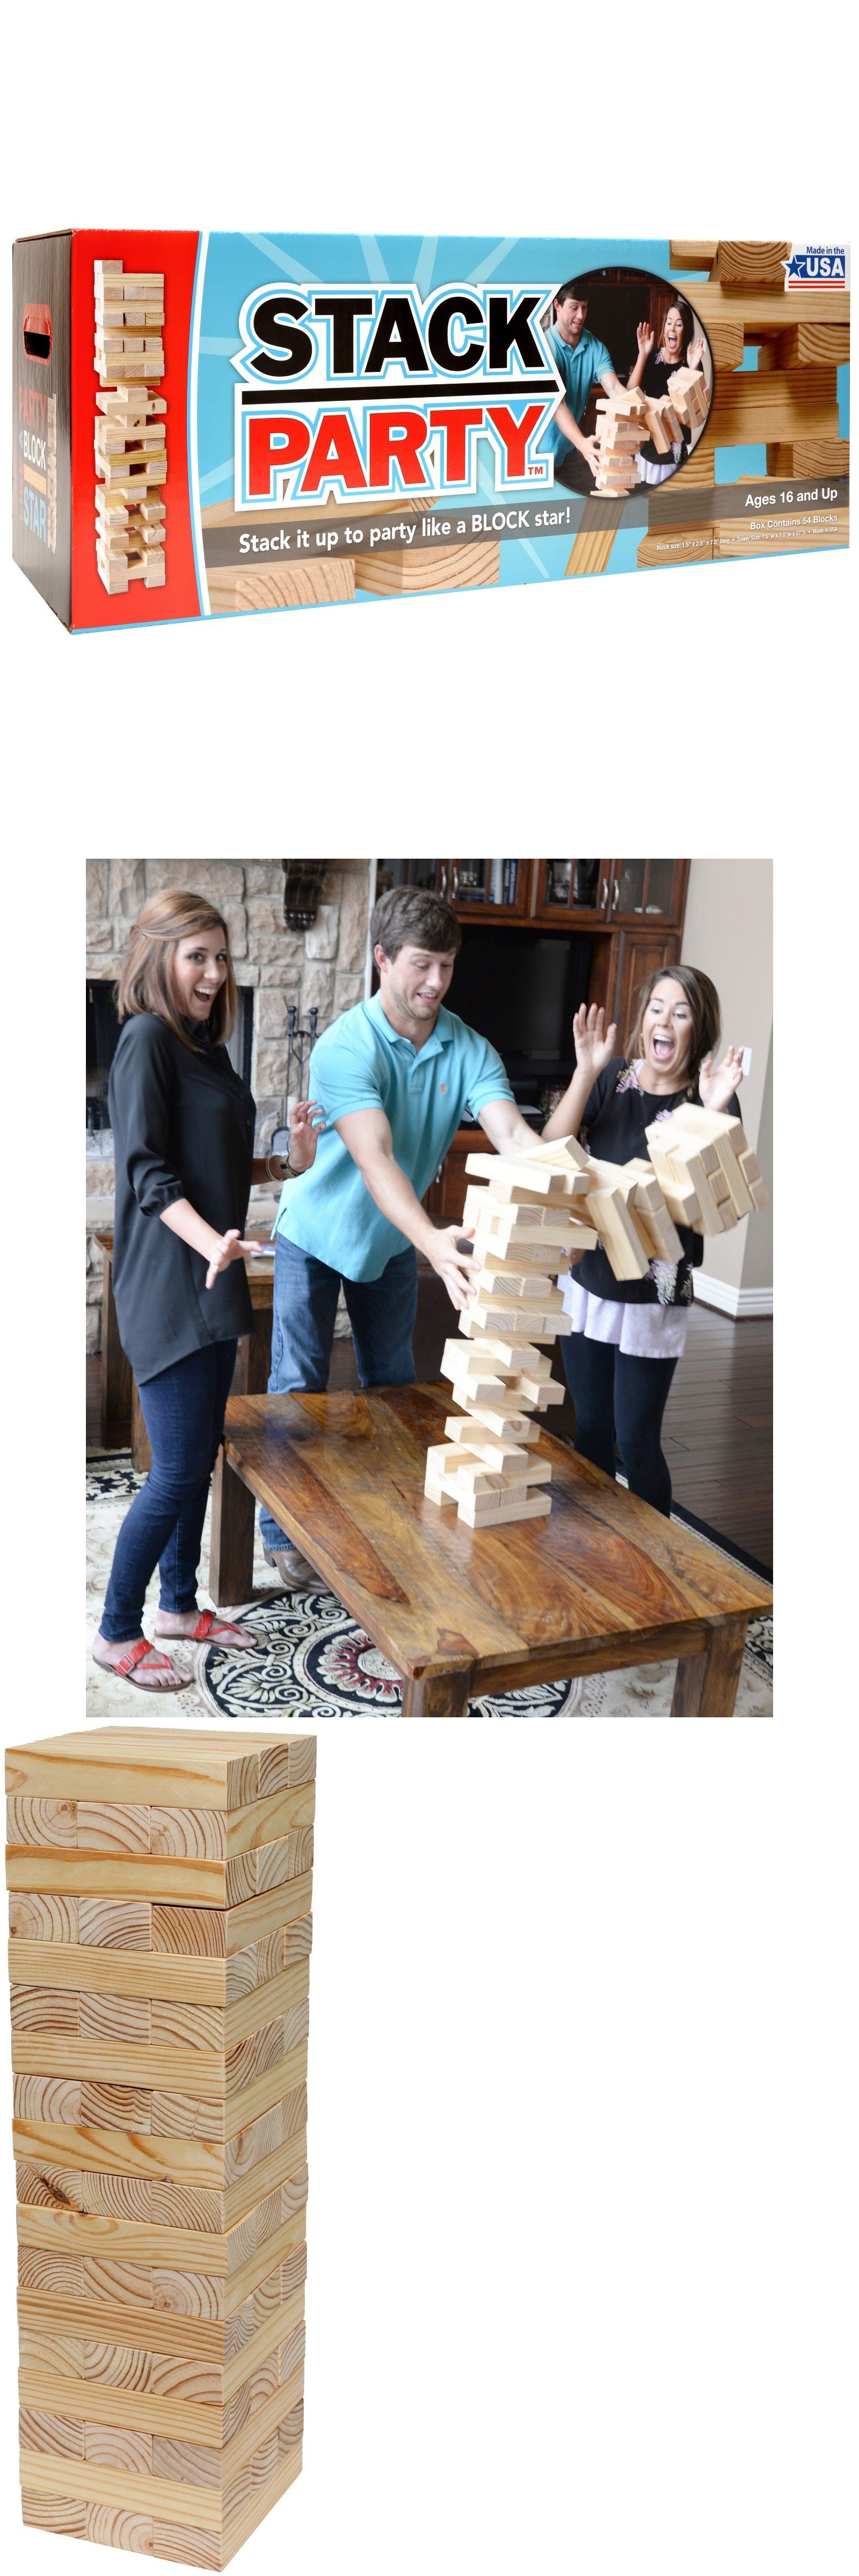 Other Backyard Games Stack Party Giant Tumbling Tower Game